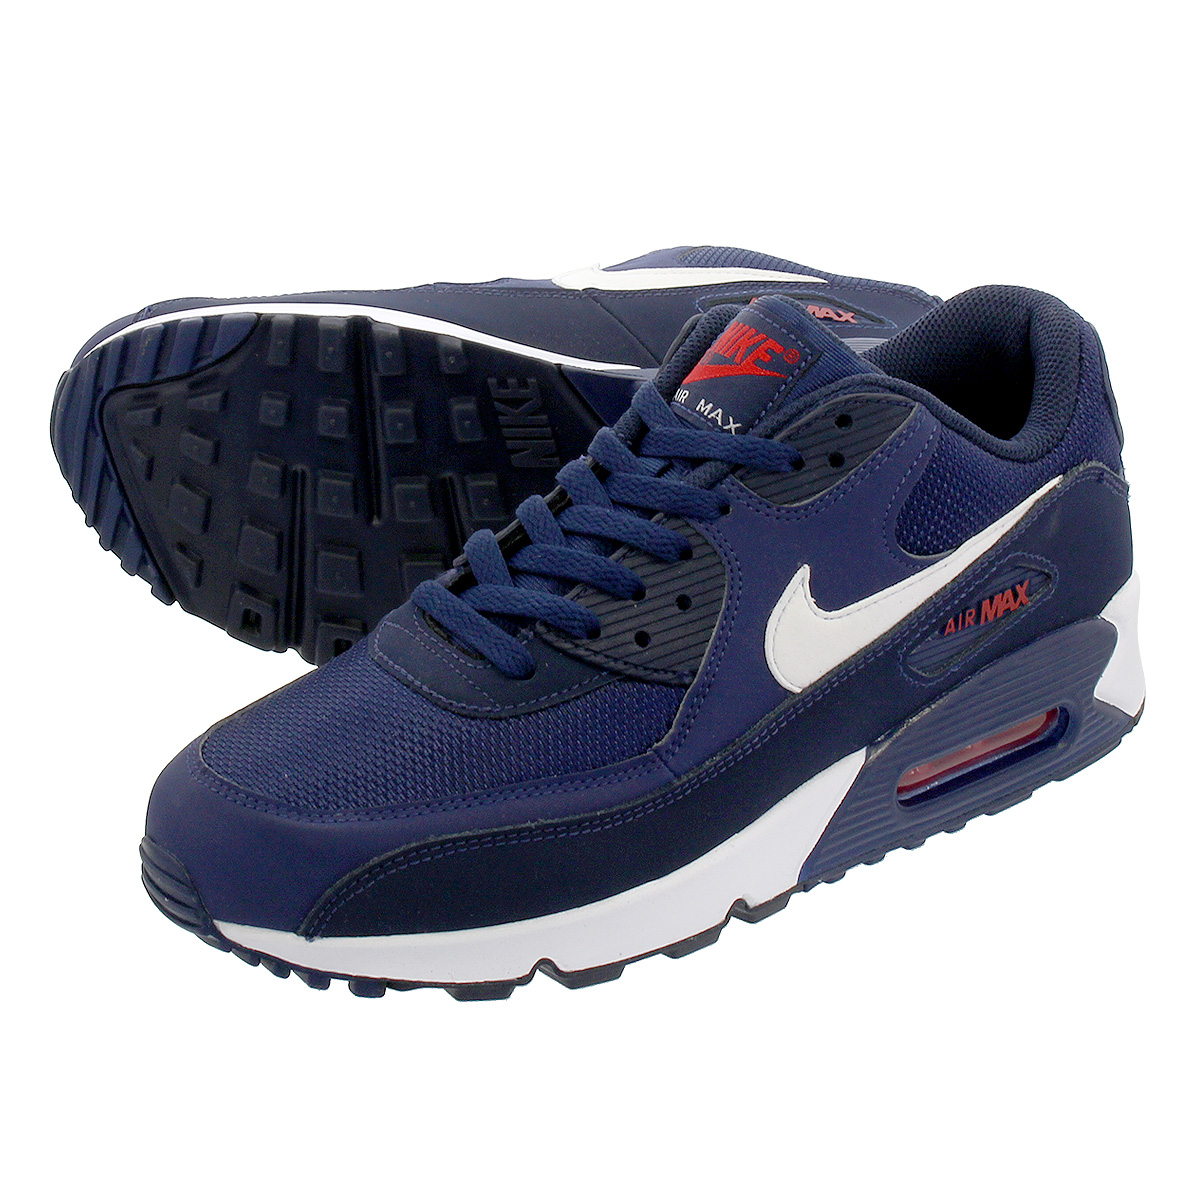 outlet store 2d7a4 4055a NIKE AIR MAX 90 ESSENTIAL Kie Ney AMAX 90 essential MIDNIGHT NAVY WHITE UNIVERSITY  RED aj1285-403